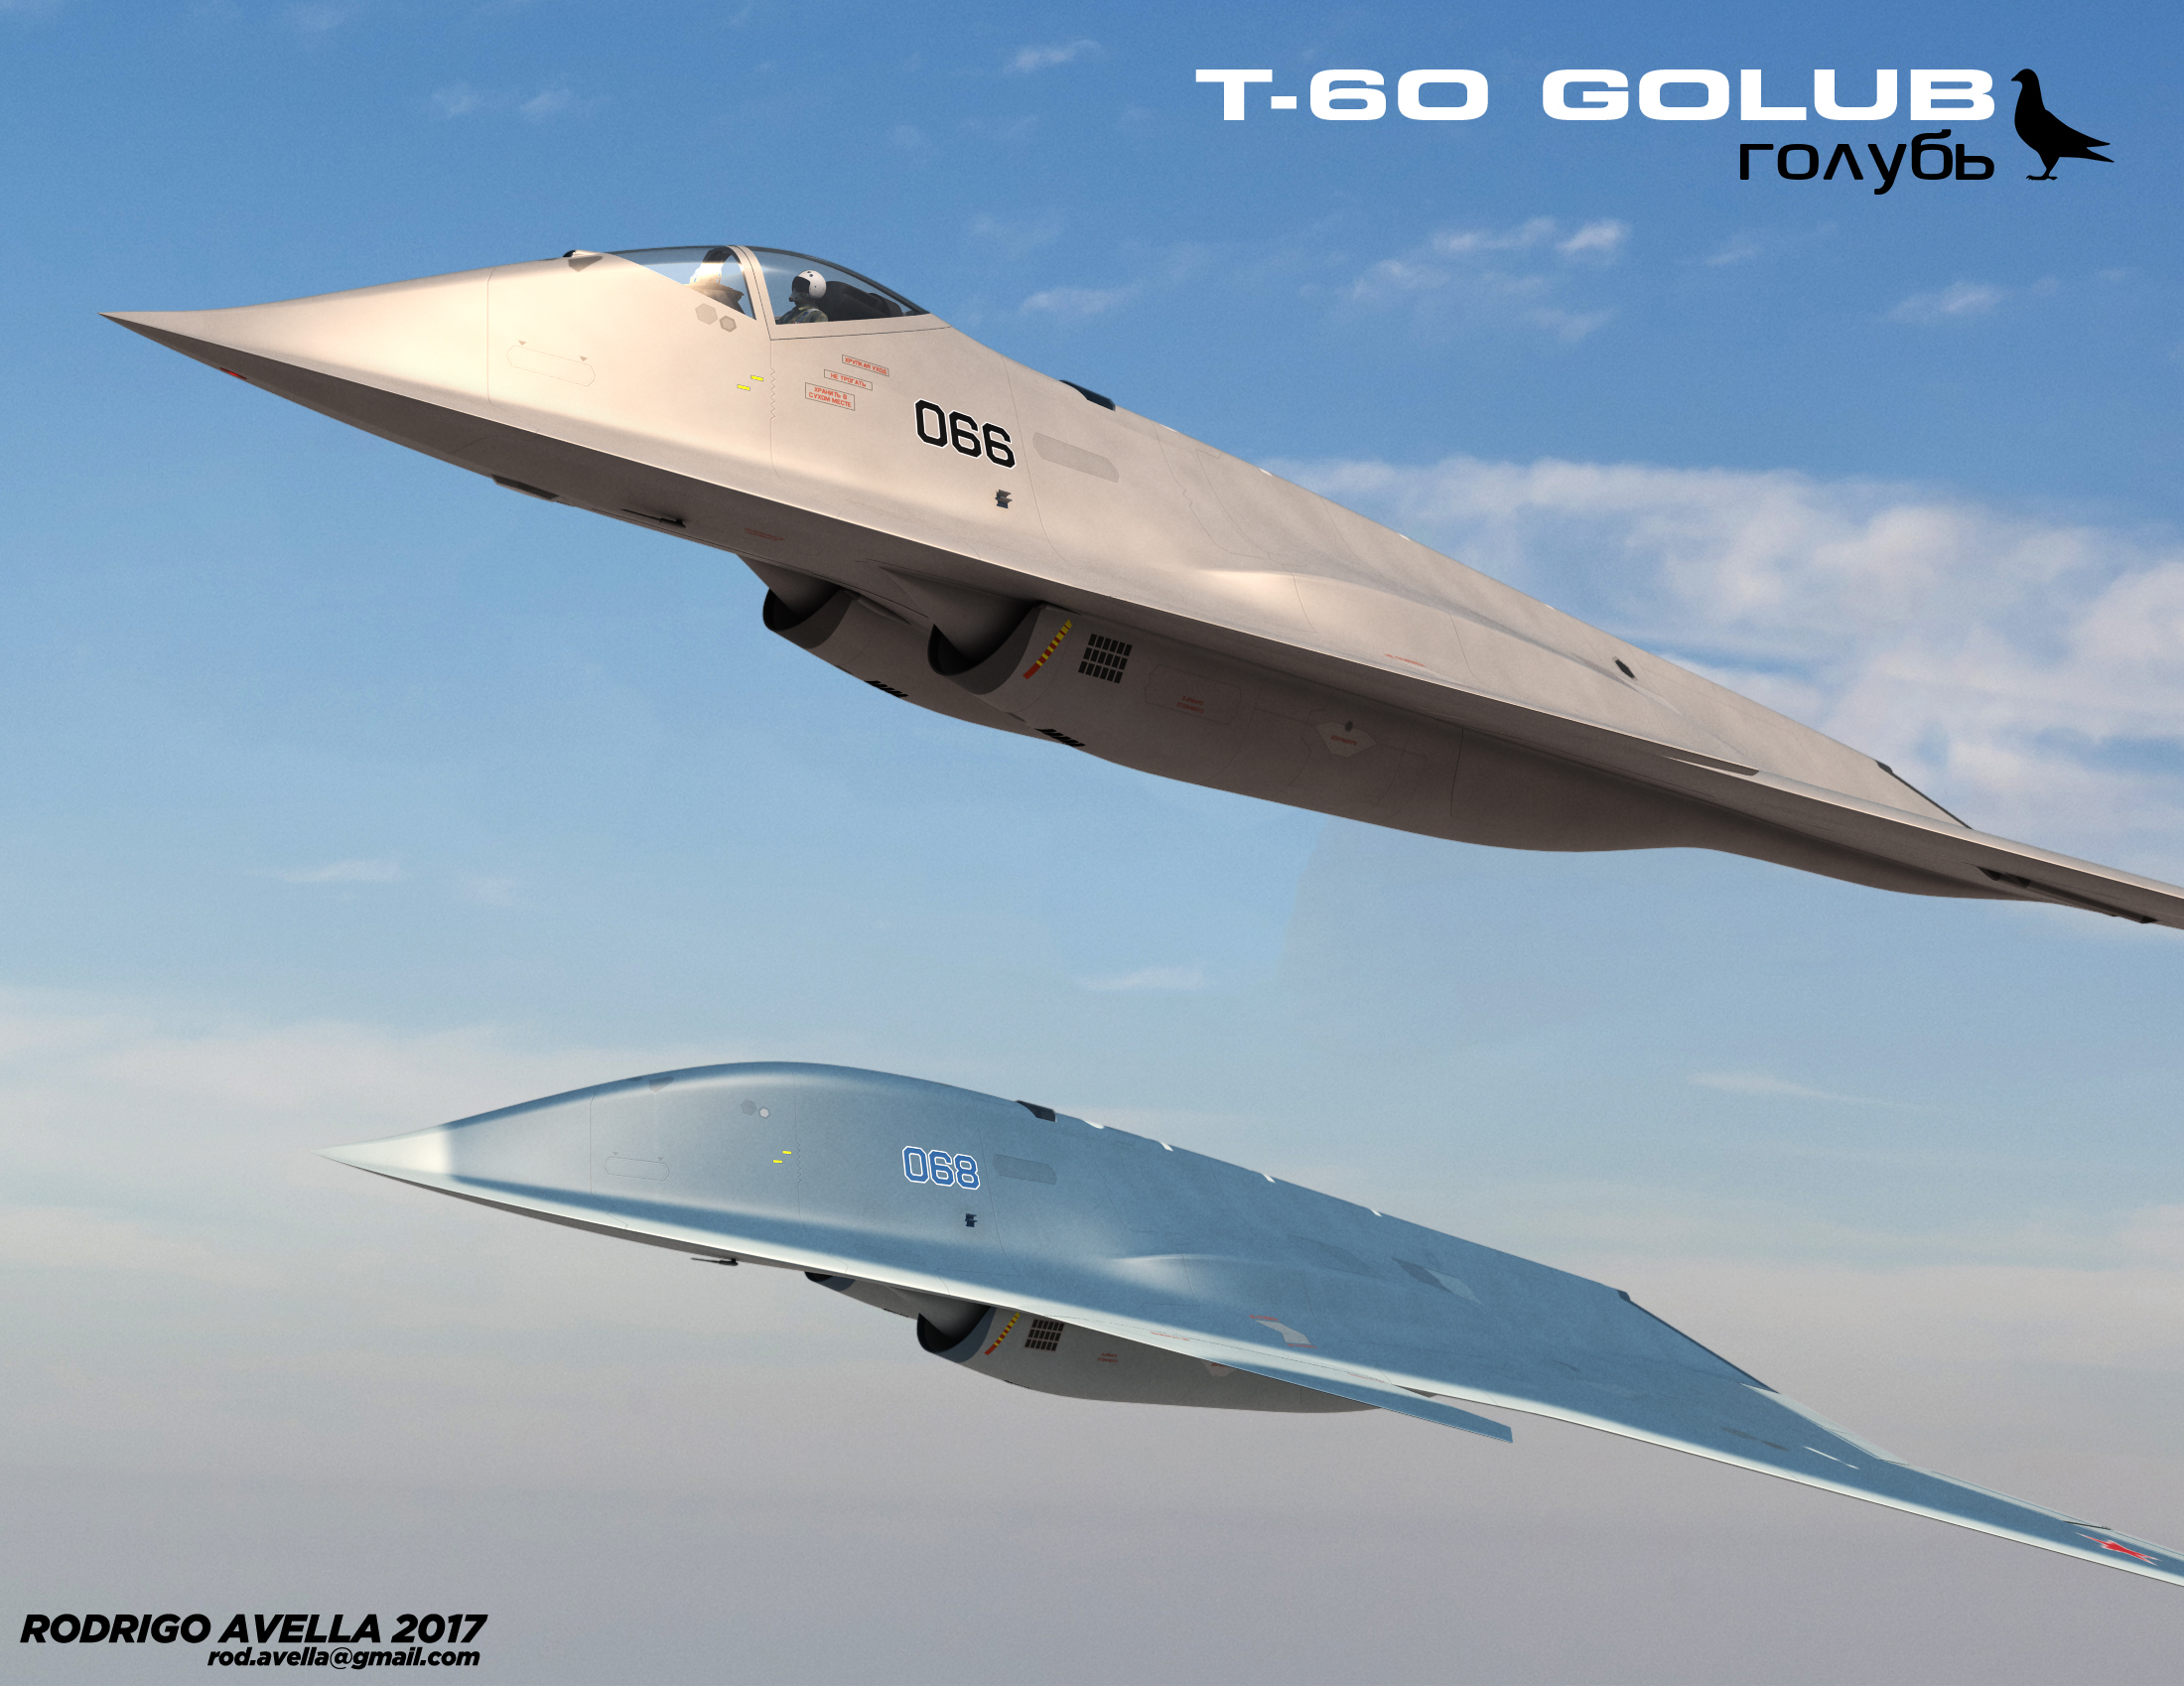 russian_sixth_generation_concept_fighter_aircraft_by_rodrigoavella-db36sun.jpg